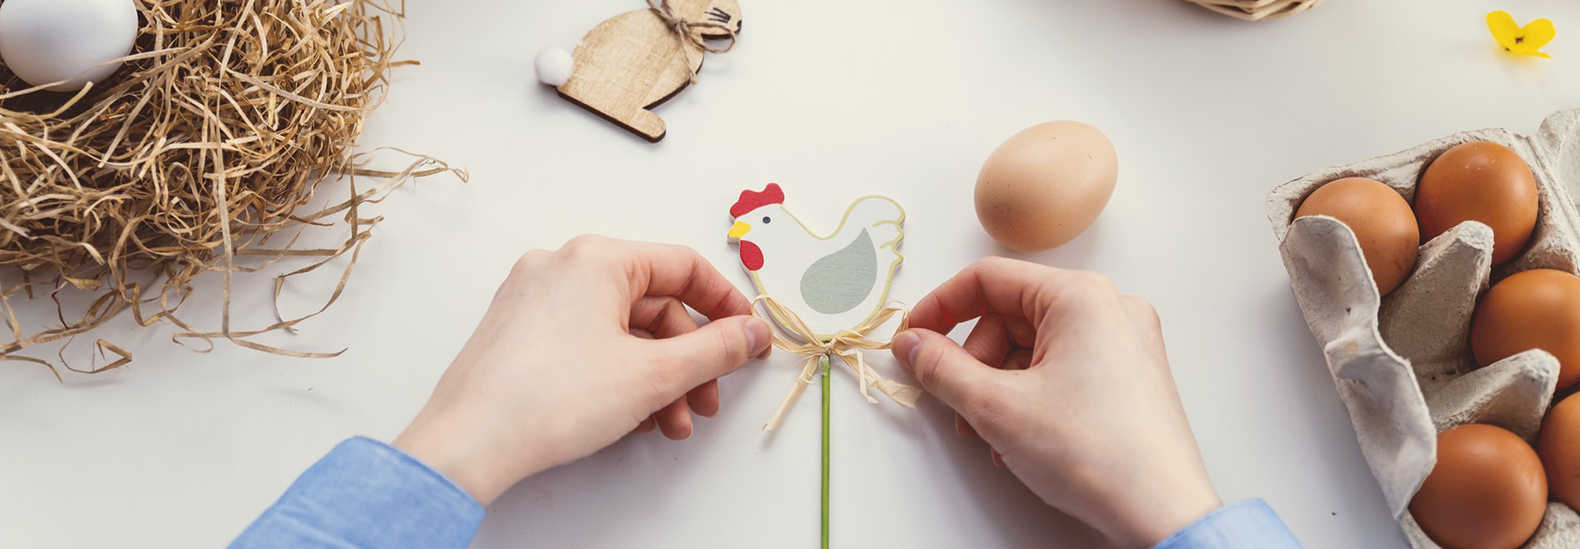 How to have a plastic-free Easter